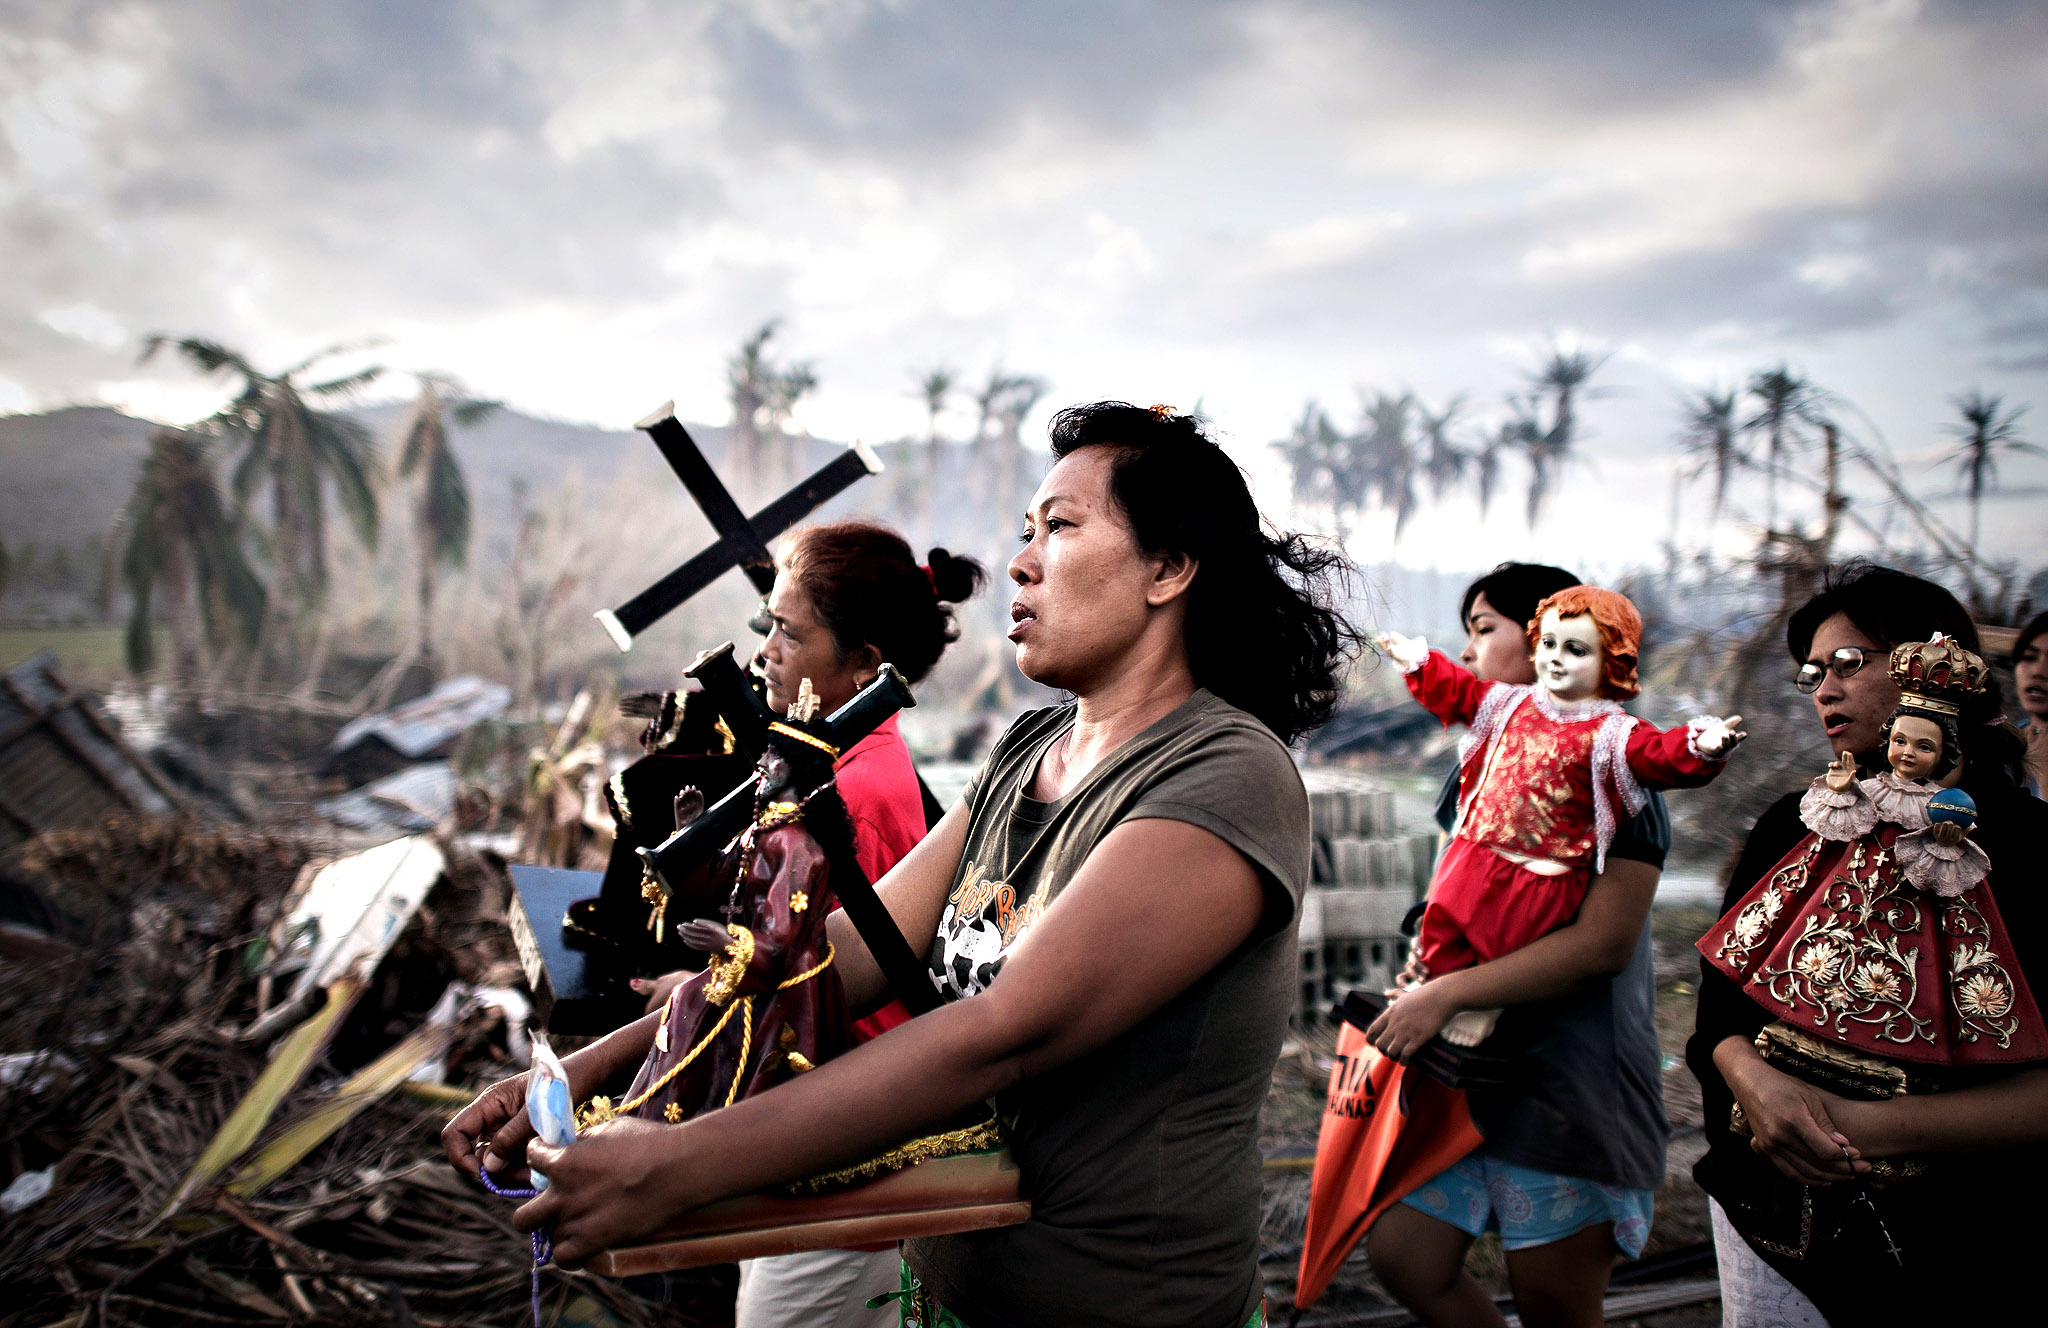 Survivors of Super Typhoon Haiyan march during a religious procession in Tolosa on the eastern Philippine island of Leyte on November 18, 2013 over one week after Super Typhoon Haiyan devastated the area.  The United Nations estimates that 13 million people were affected by Super Typhoon Haiyan with around 1.9 million losing their homes.